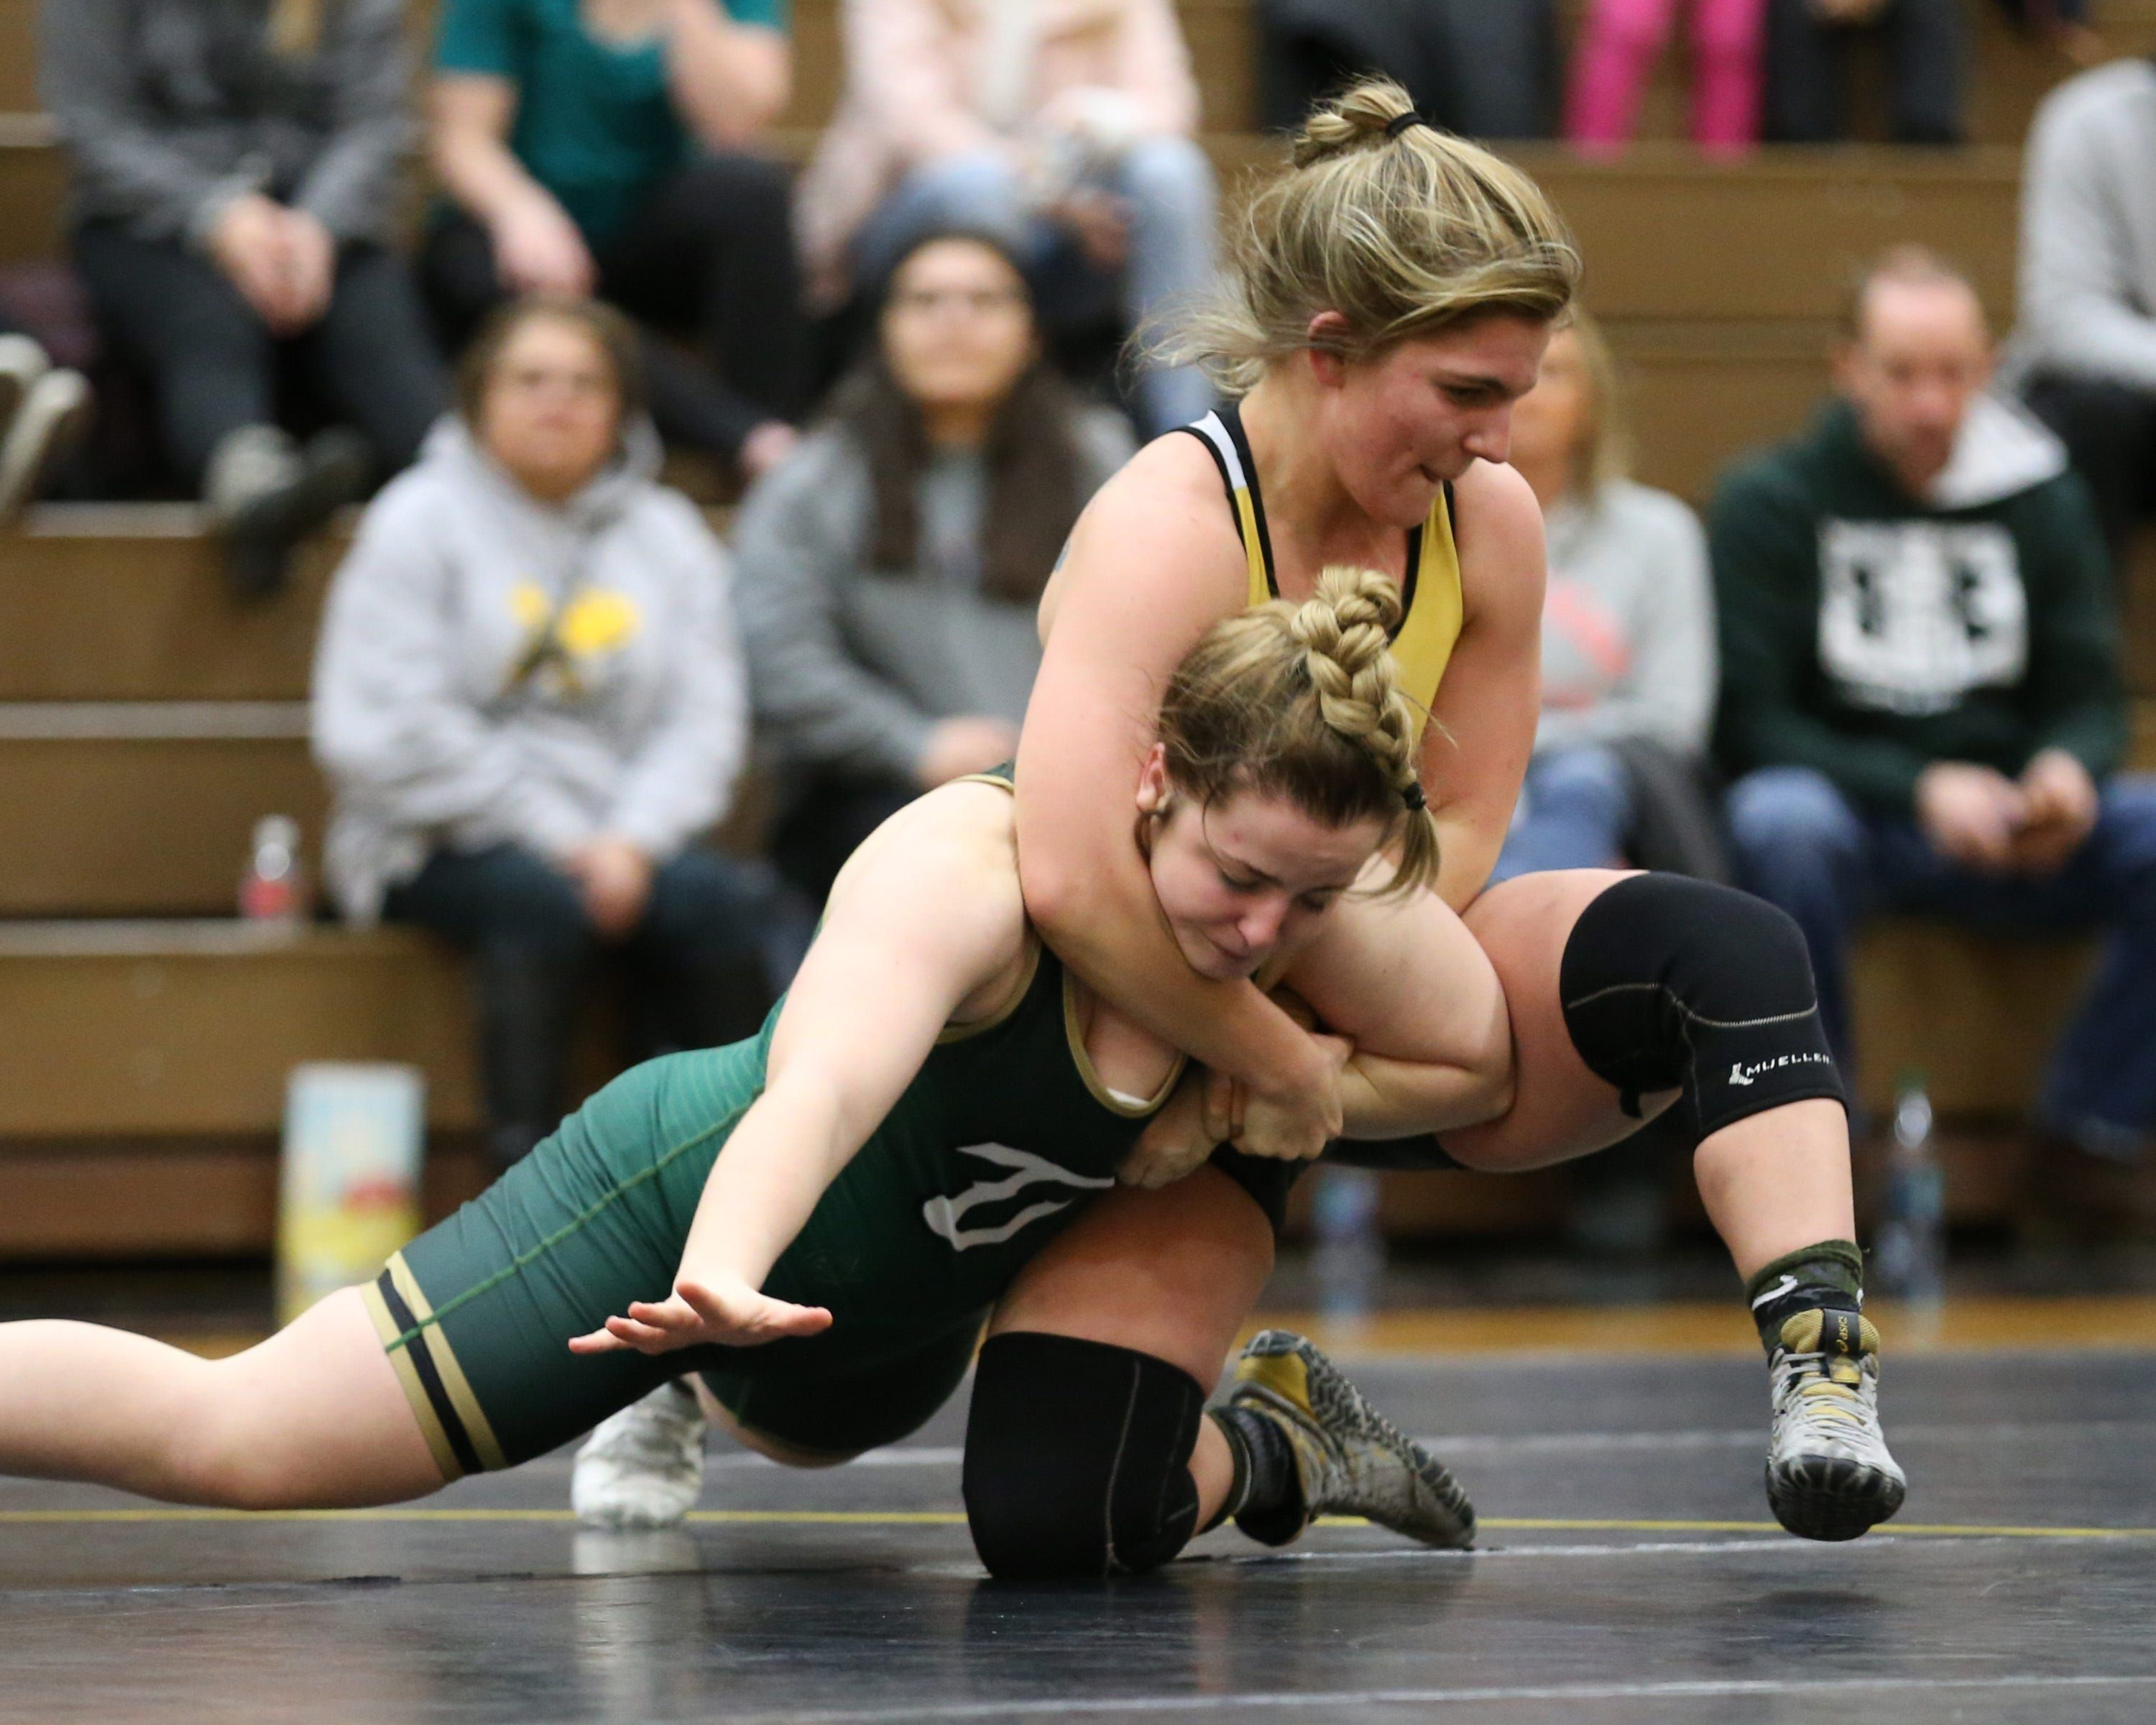 Adrian College: Home of the first ever women's college wrestling national meet